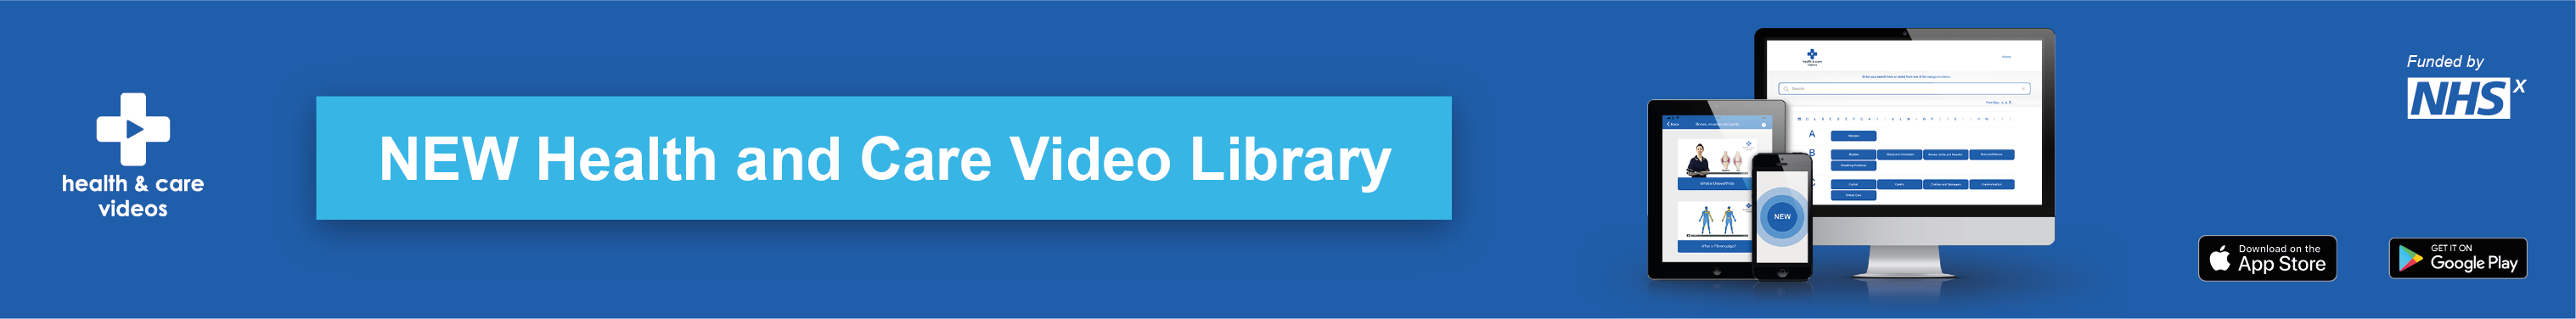 NEW Health and Care Video Library Download on the App Store or Get it on Google Play